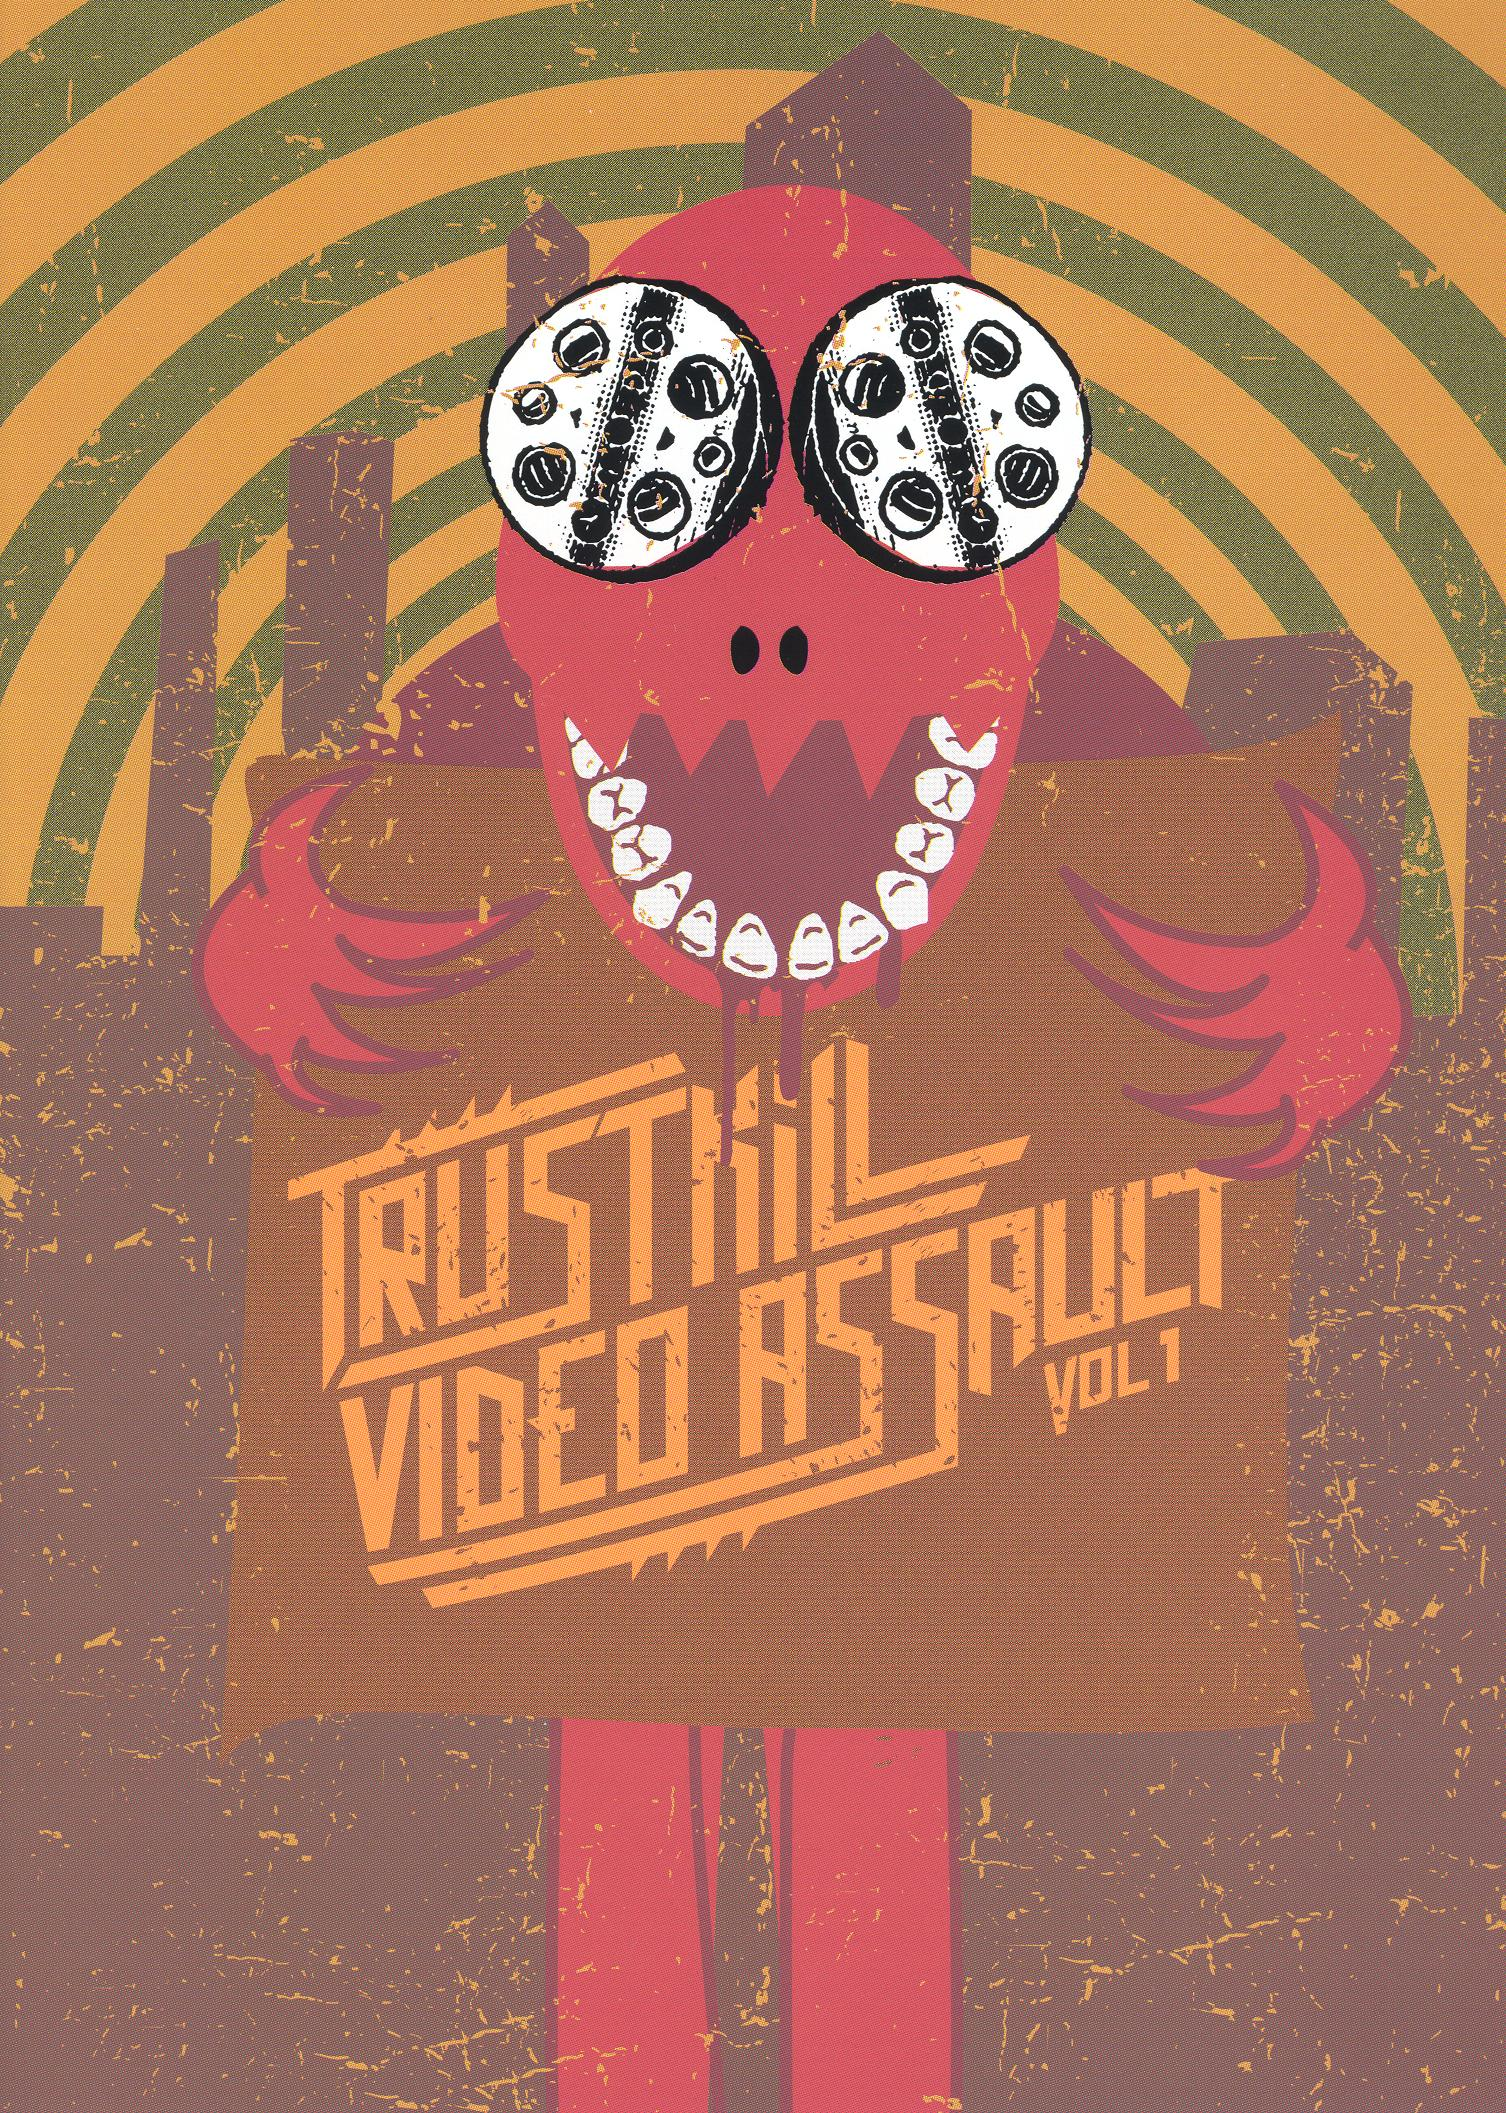 Trustkill Video Assault DVD, Vol. 1